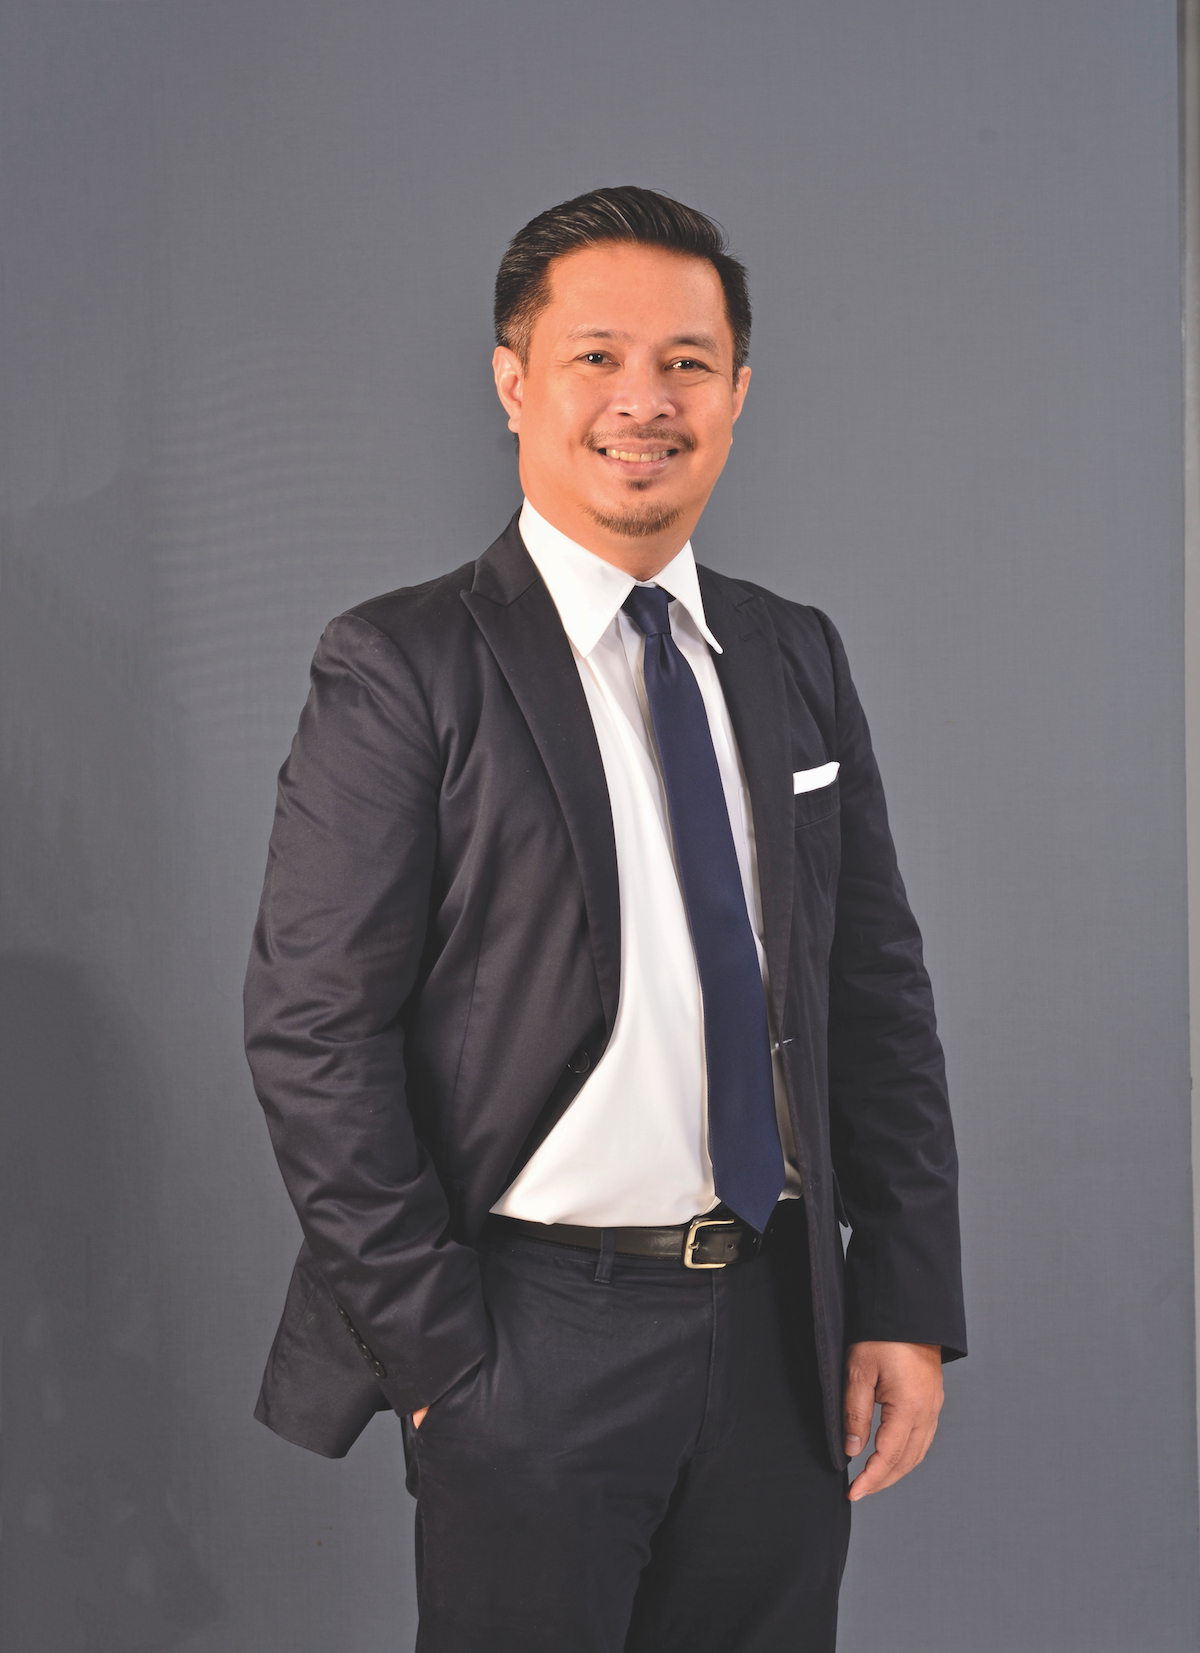 Jay Daniel, Santiago General Manager of Philippine Ports Authority